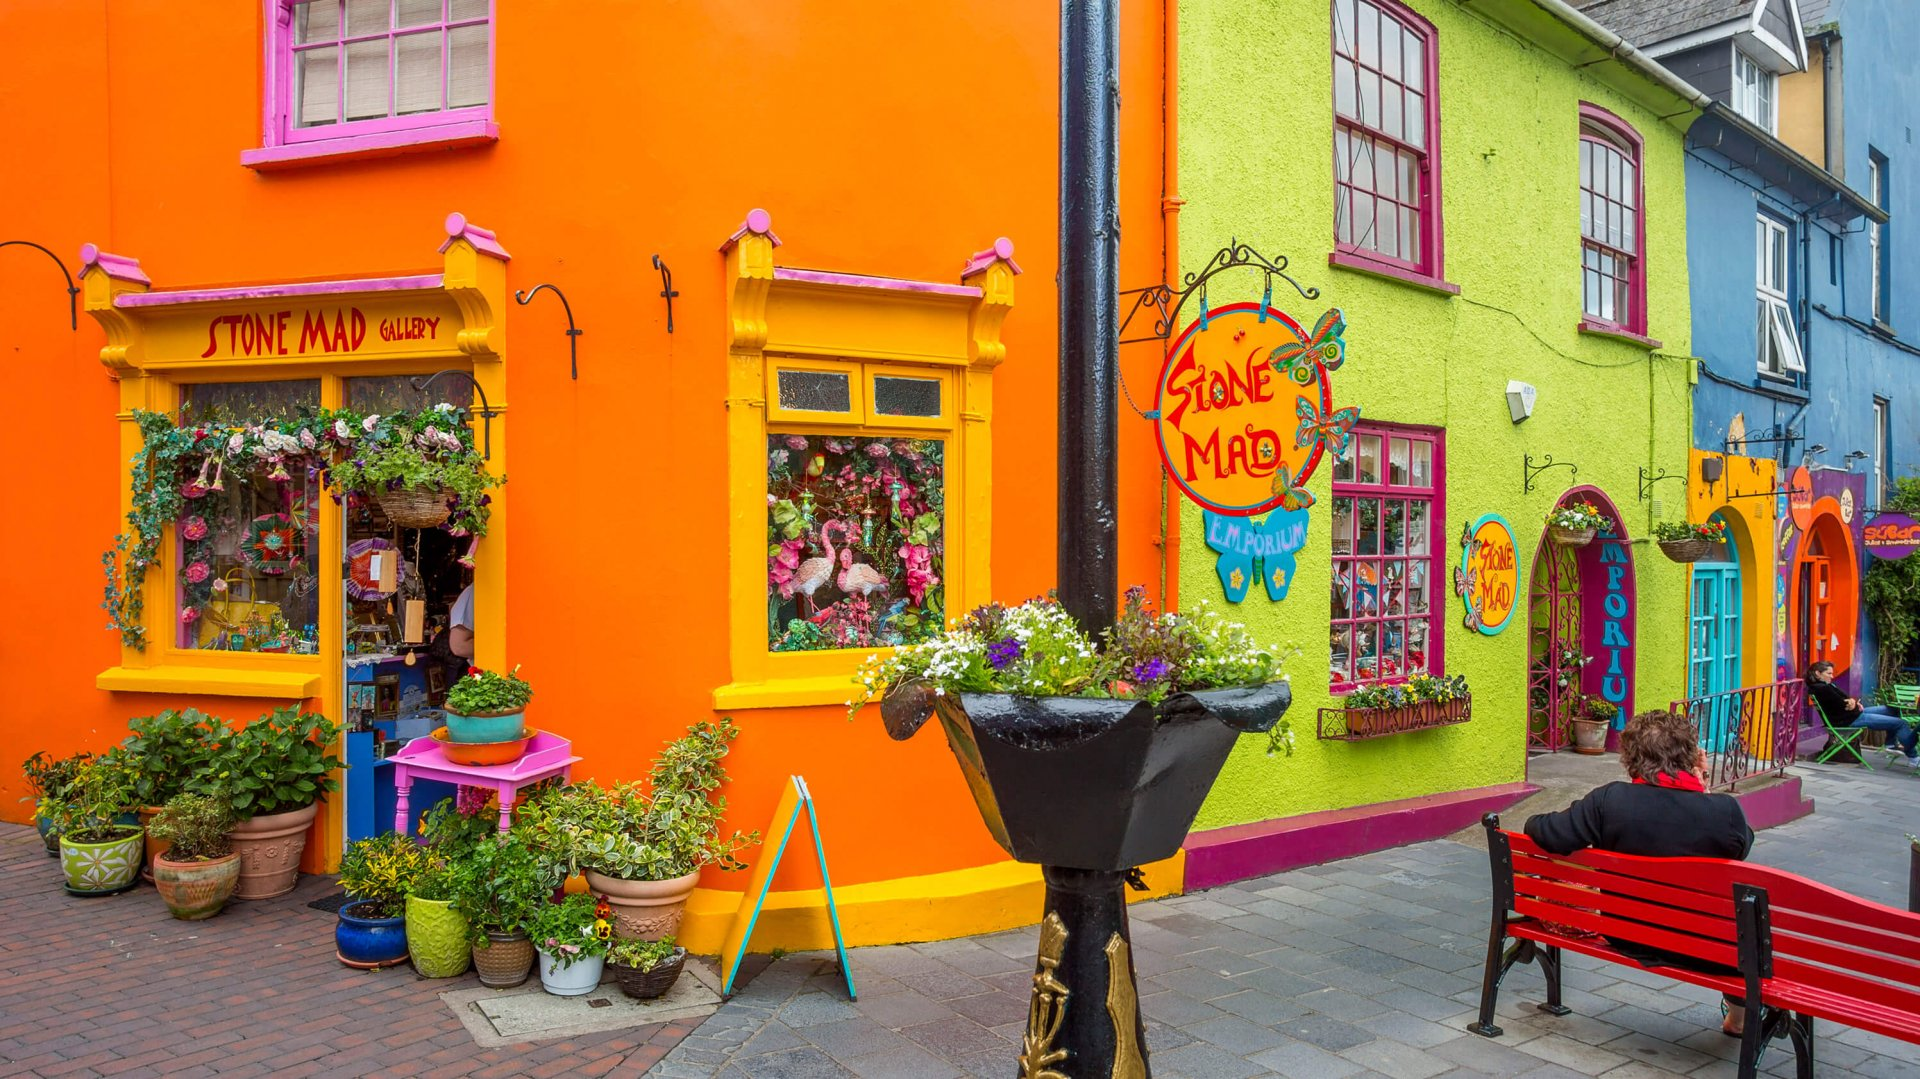 Colourful shop fronts on the streets of Kinsale